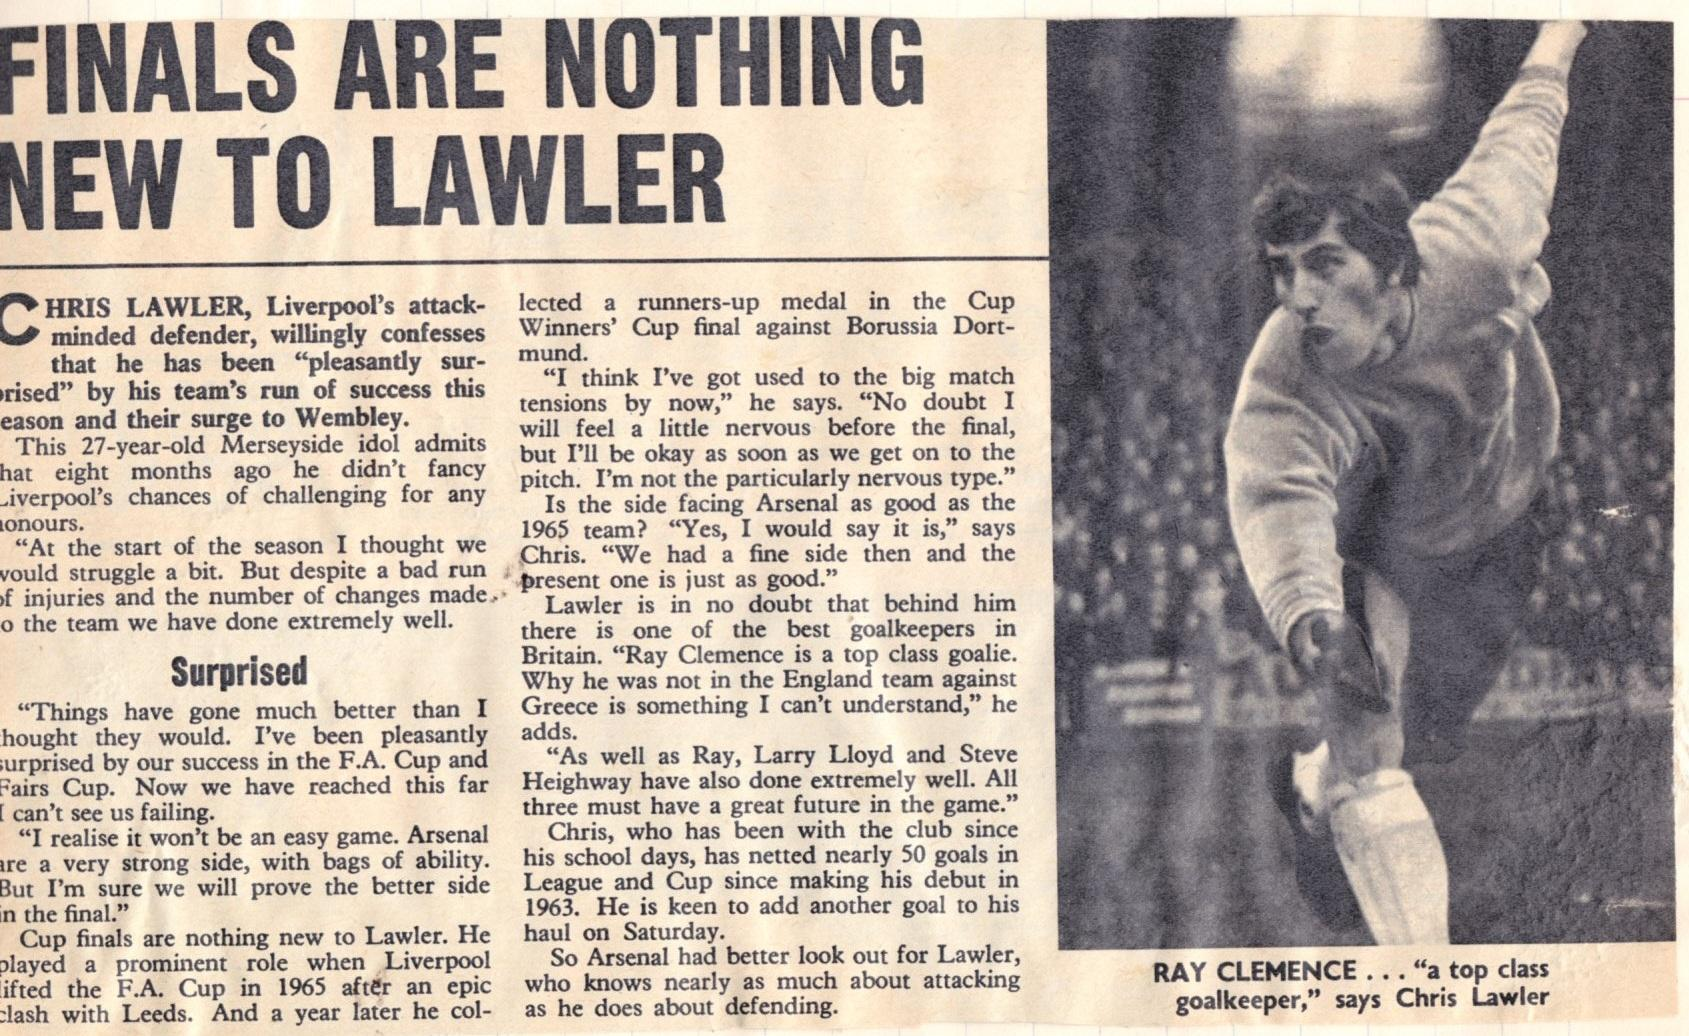 Finals nothing new to Lawler - from May 1971